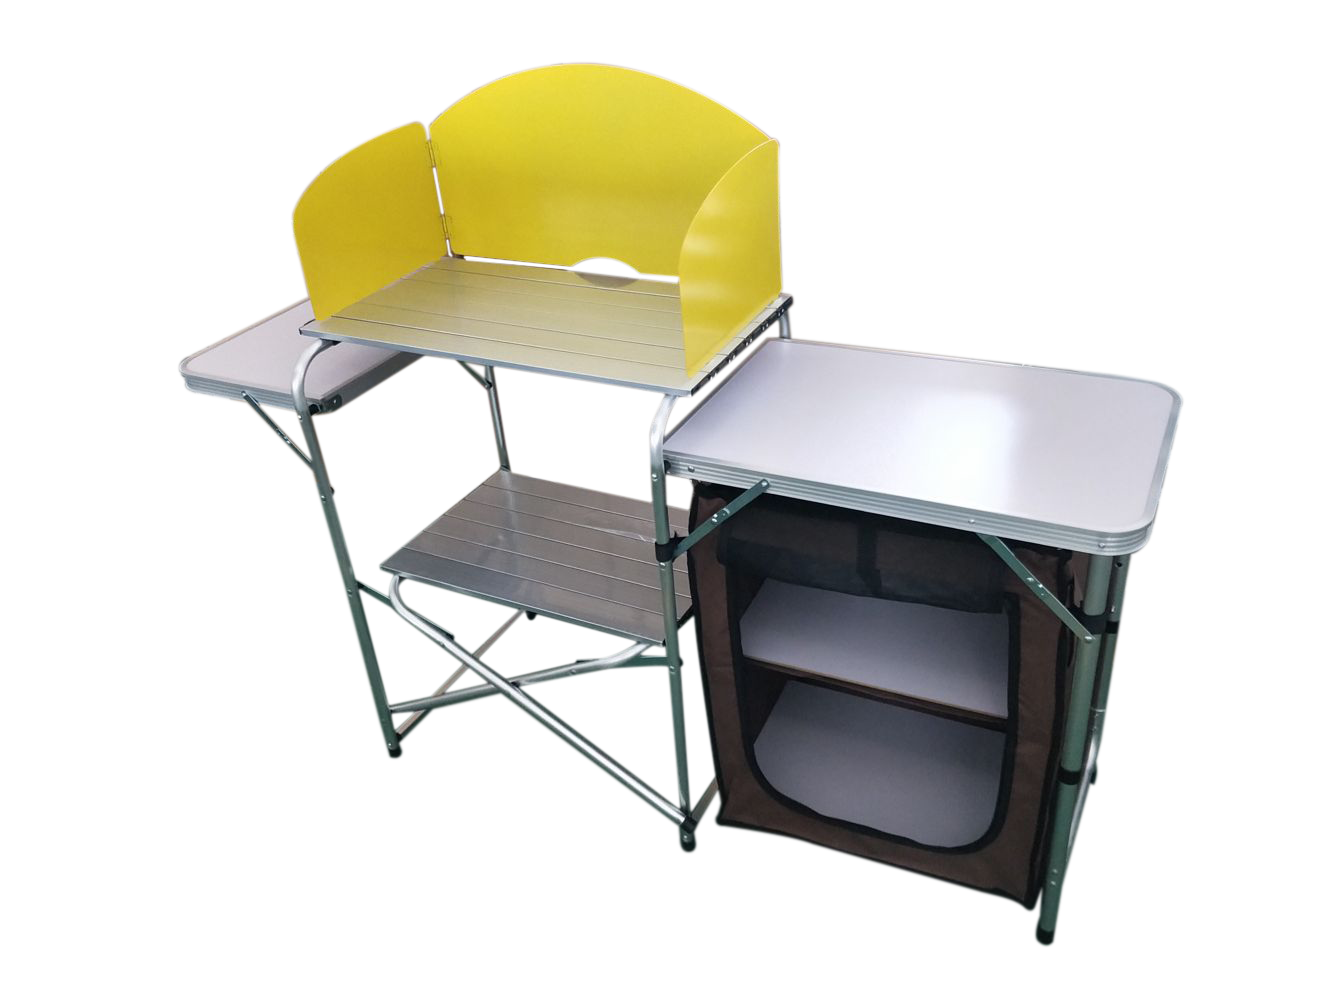 Foldable Camping Kitchen with Cupboard and Side Table image